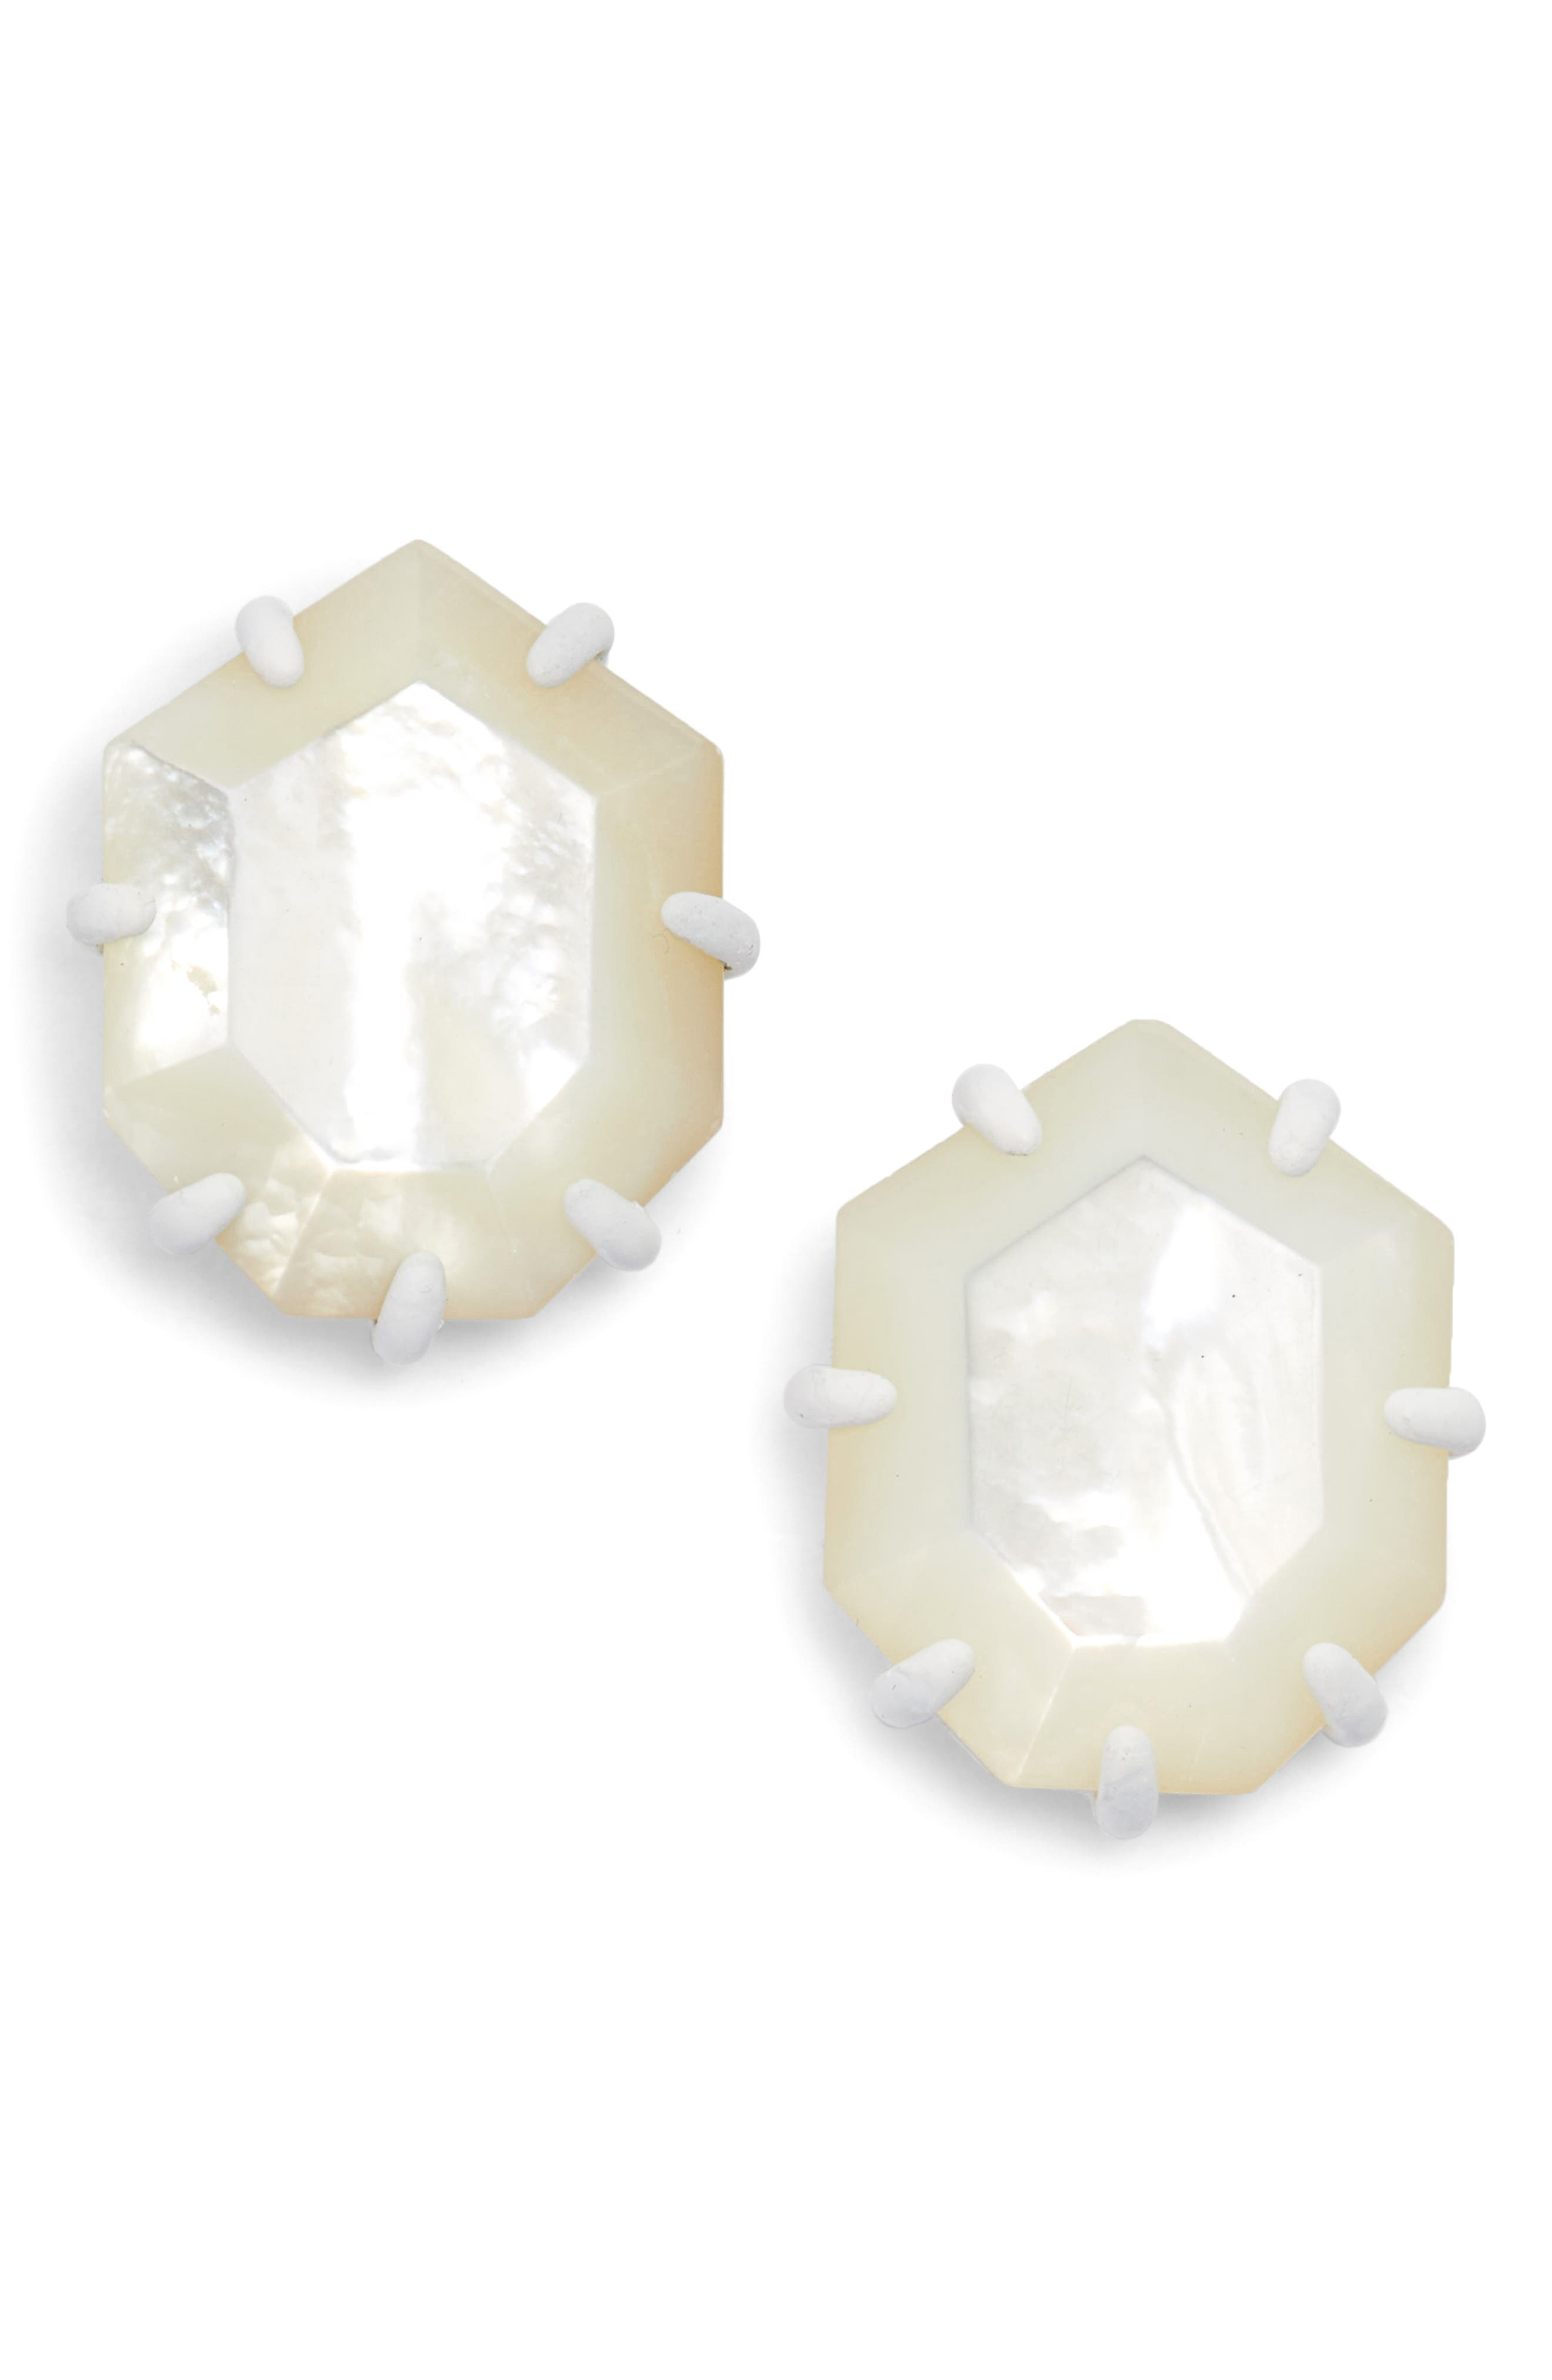 Morgan Stud Earrings,                             Main thumbnail 1, color,